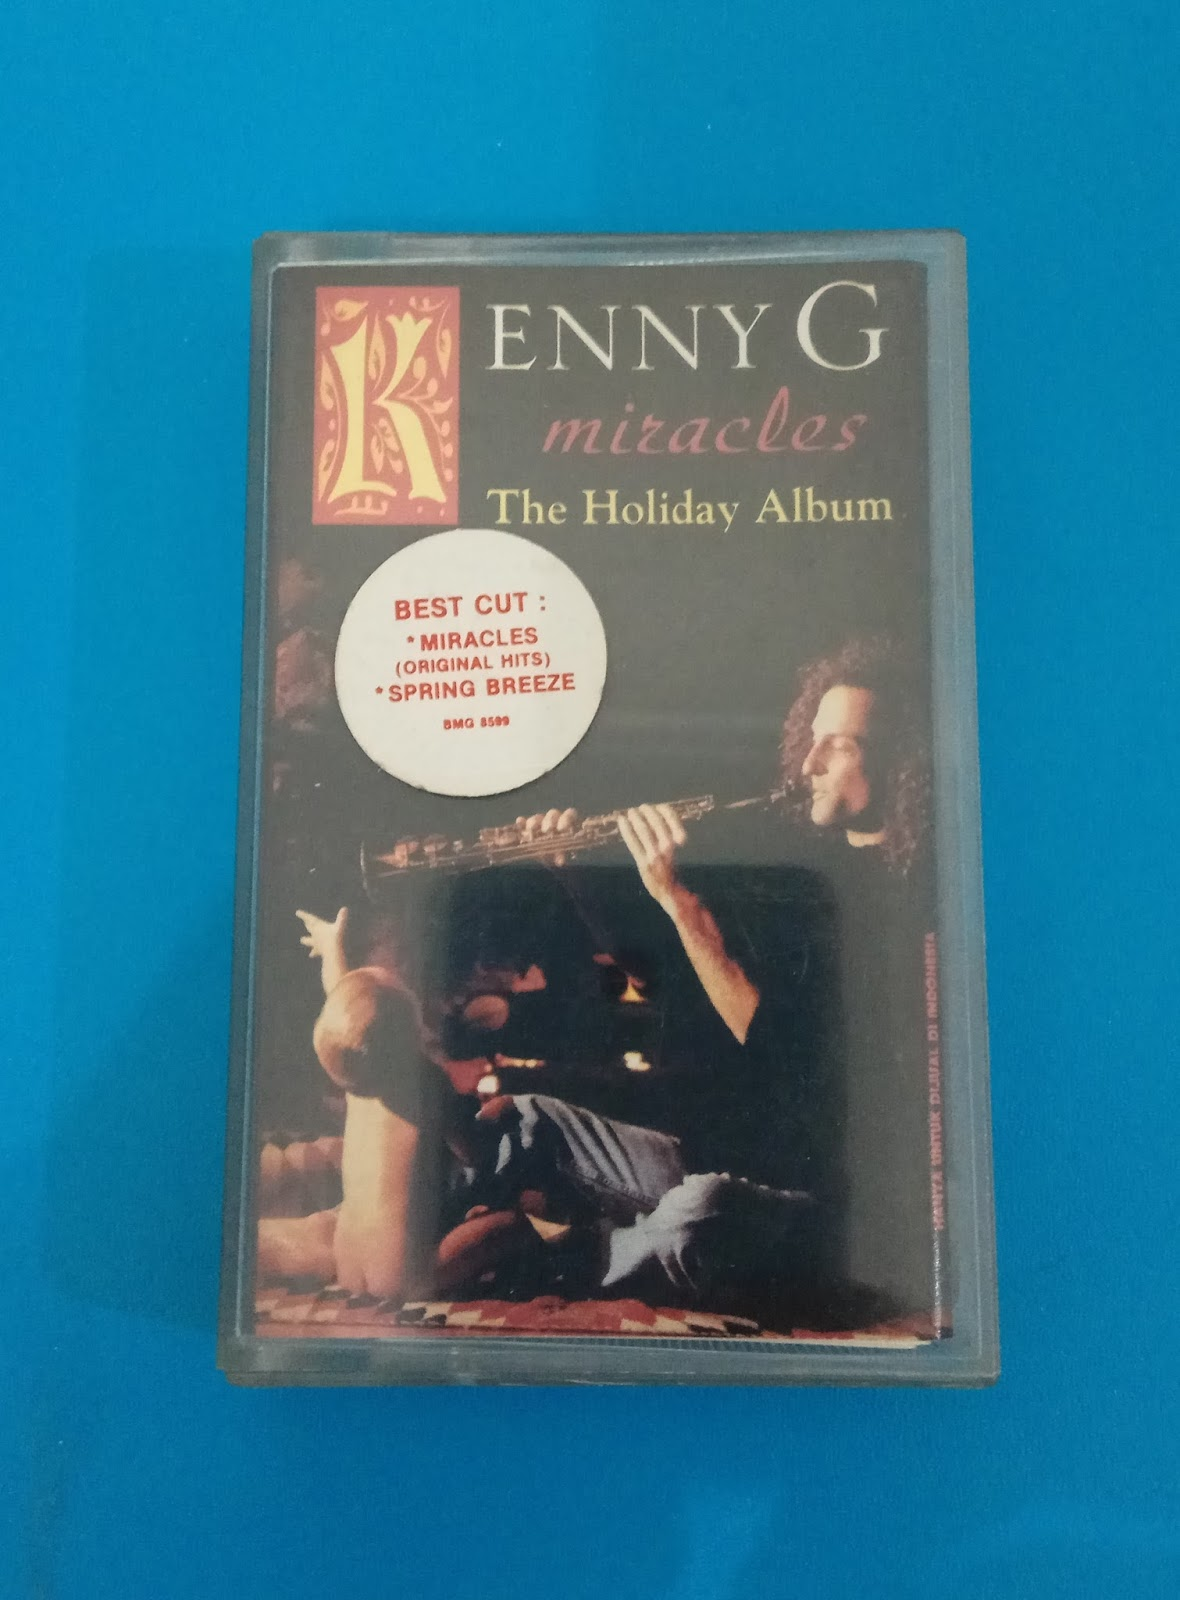 miracles by kenny g 1994